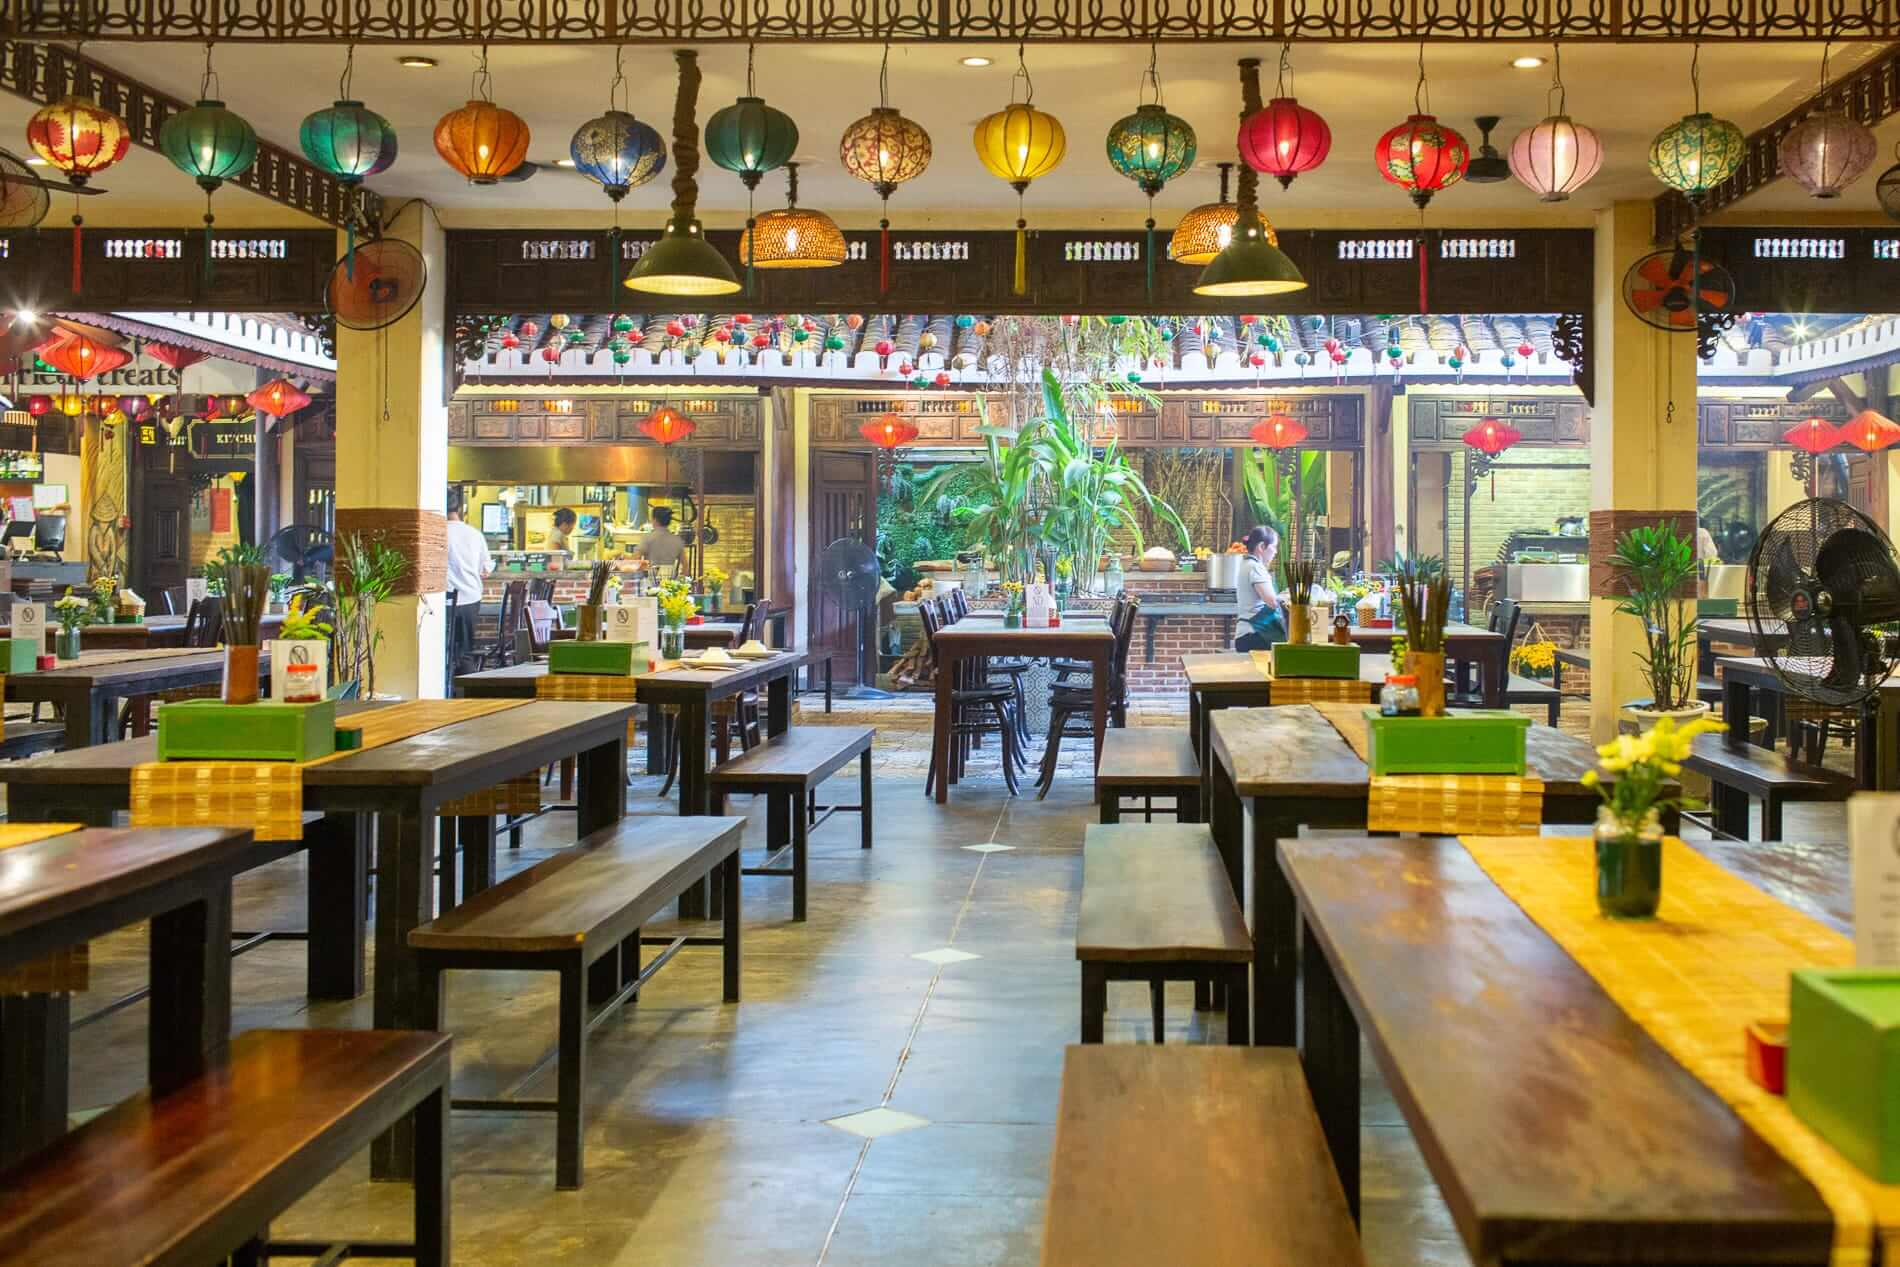 Hoi An Restaurant Vy's Marketplace